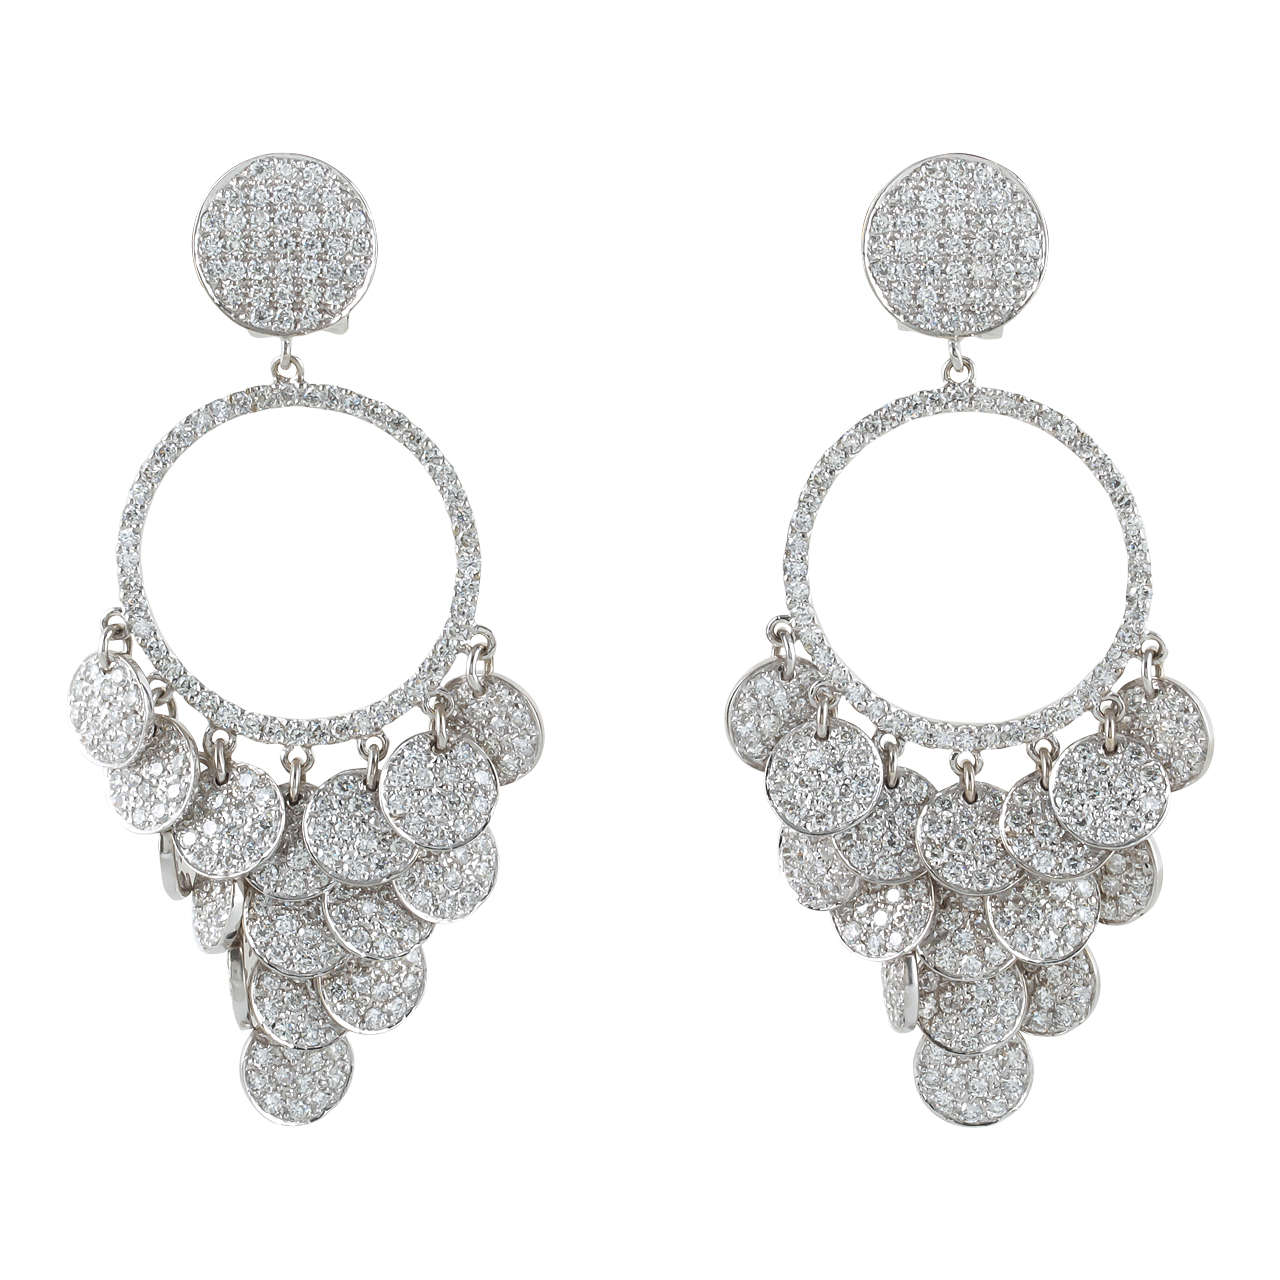 Pave Diamond Chandelier Earrings For Sale at 1stdibs